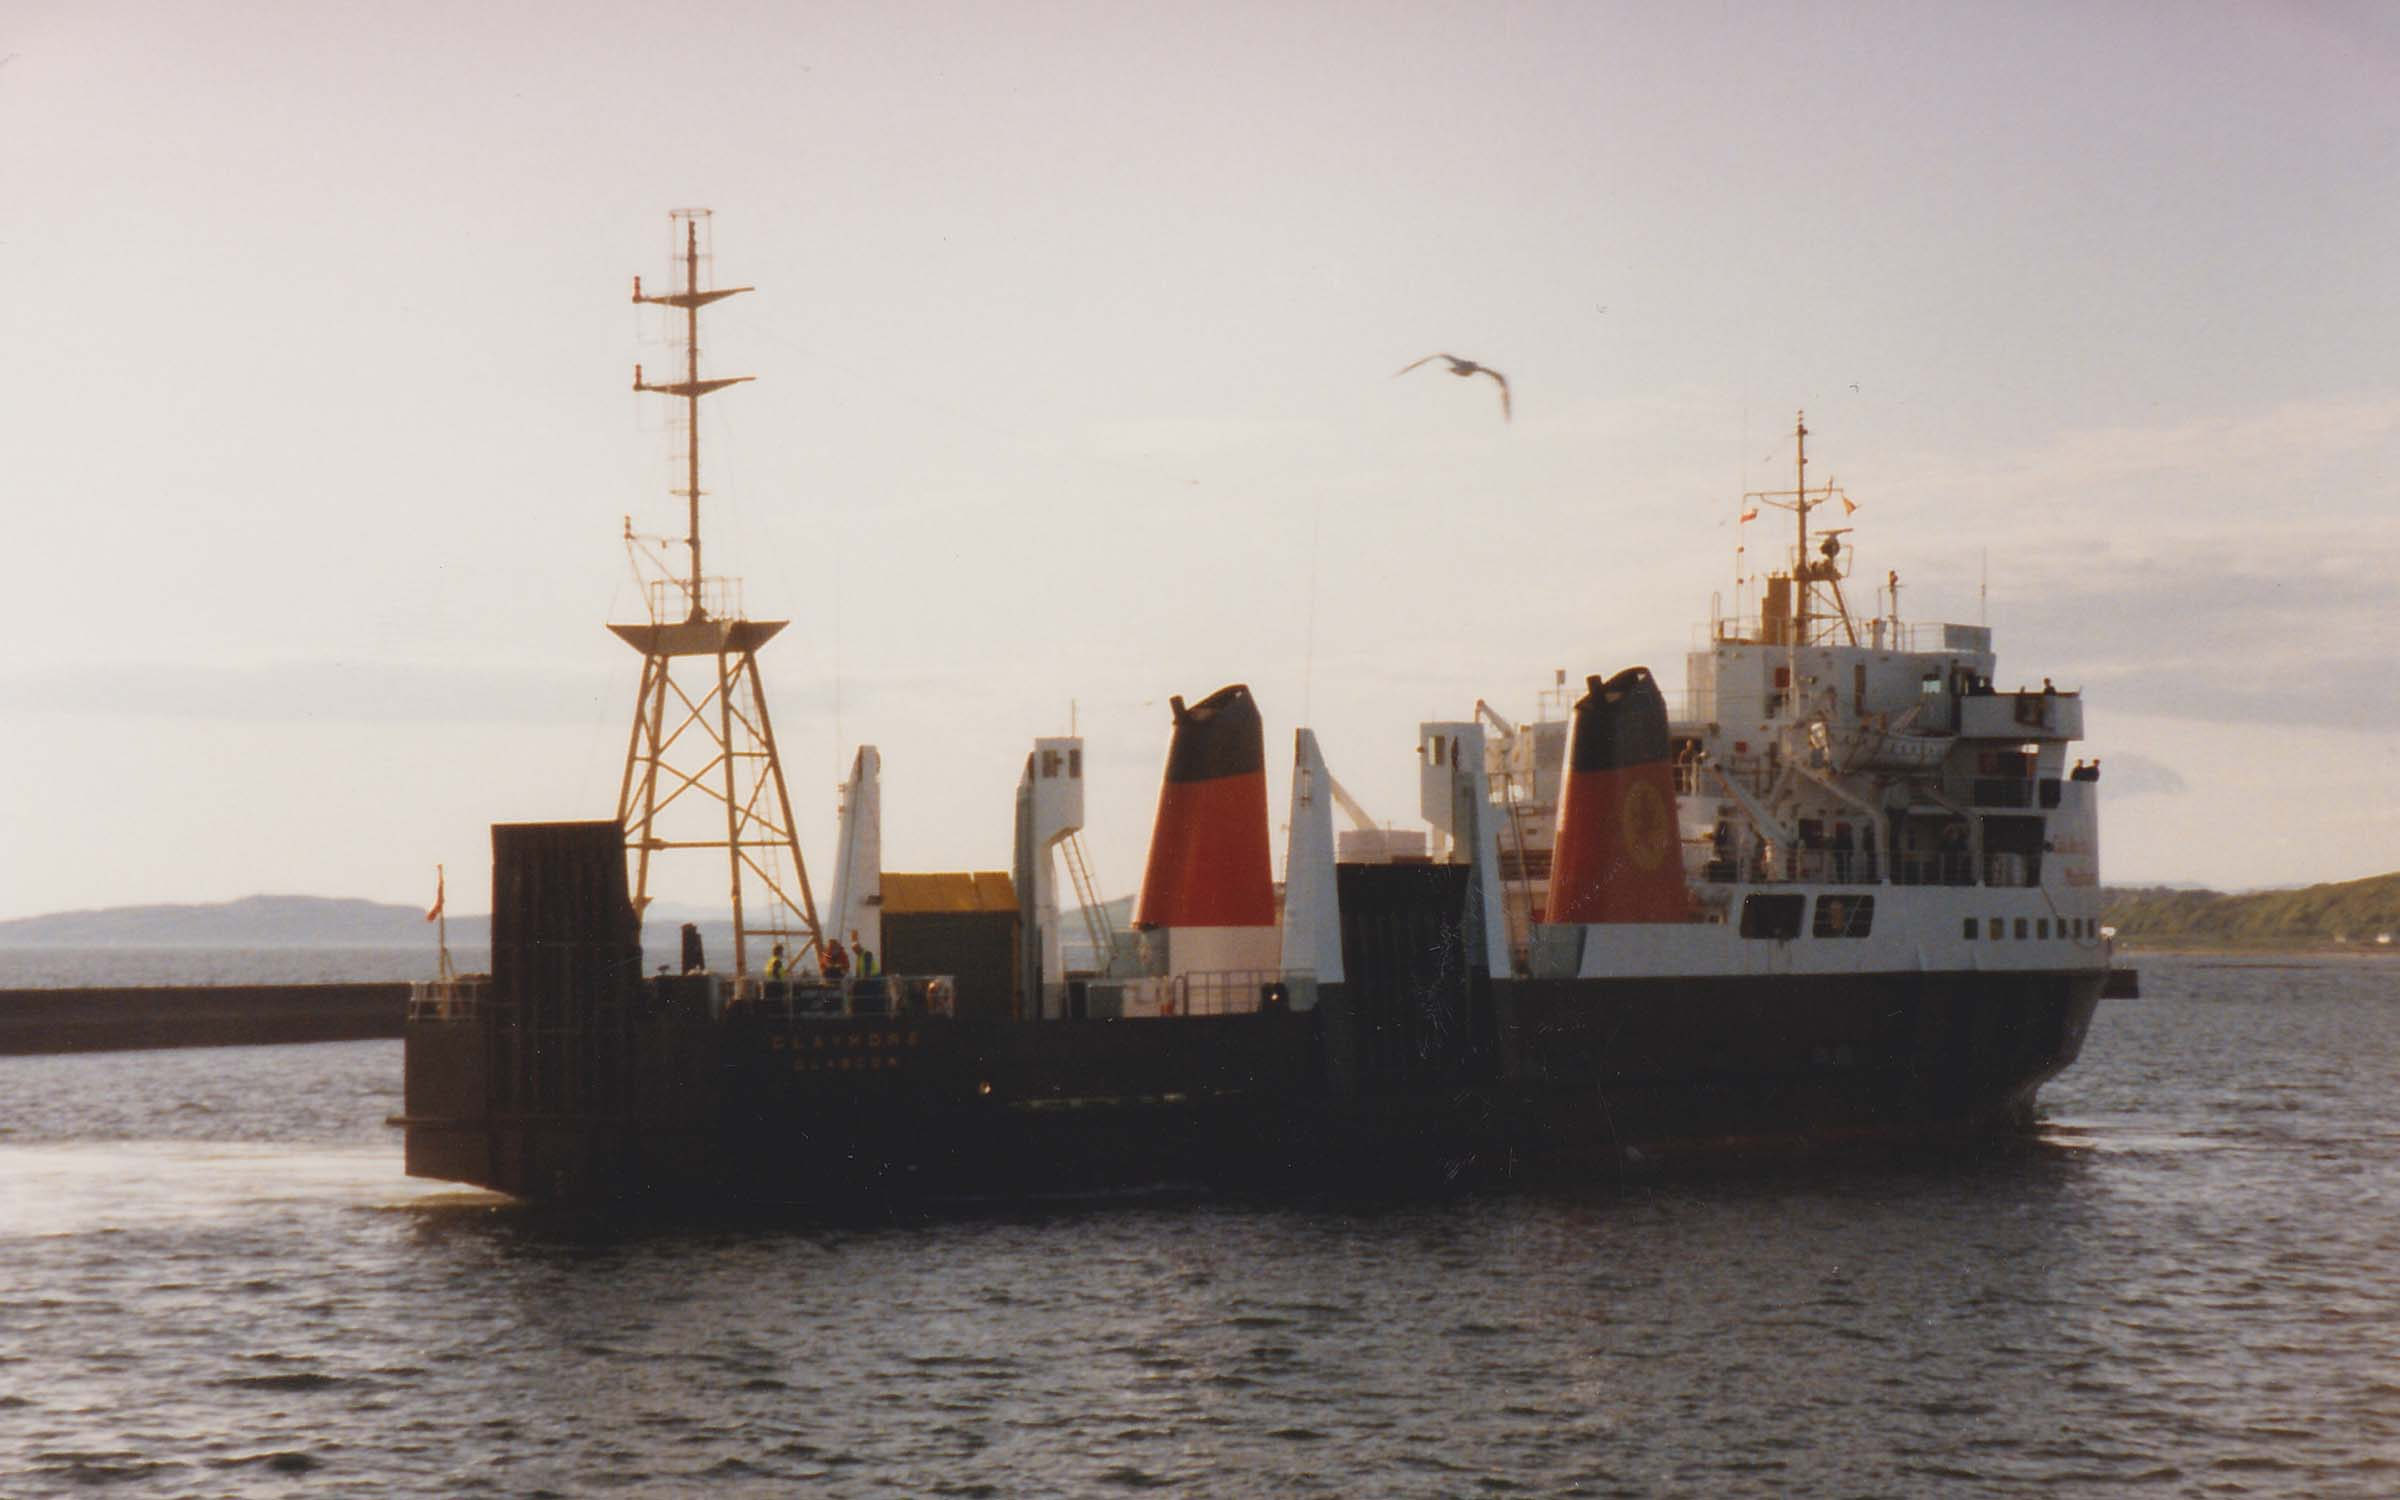 Claymore arriving back in Ardrossan (Jim Aikman Smith)